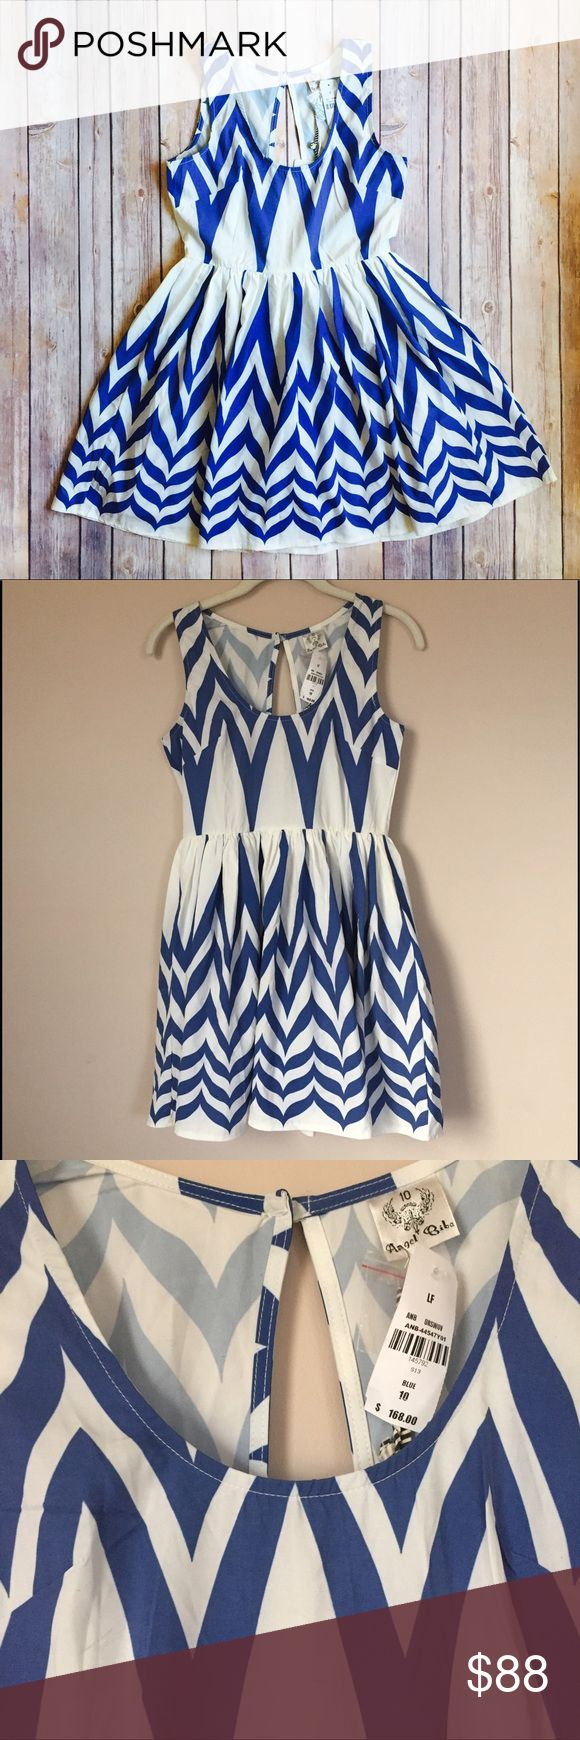 """LF Angel Biba Chevron Dress LF Angel Biba Chevron Dress. Super cute LF dress with white/blue chevron design. Sleeveless with tulle petticoat. Very feminine and timeless. NWT, 🇦🇺 size 10, 🇺🇸 US 6/M. Flat measurements (approx): 32.5""""L (shoulder to bottom) x 34""""W (armpit to armpit) x 27""""W (empire waist).   ⭐️ Bundle & Save, Posh Rules Only ⭐️ All Offers Accepted or Countered LF Dresses Mini"""